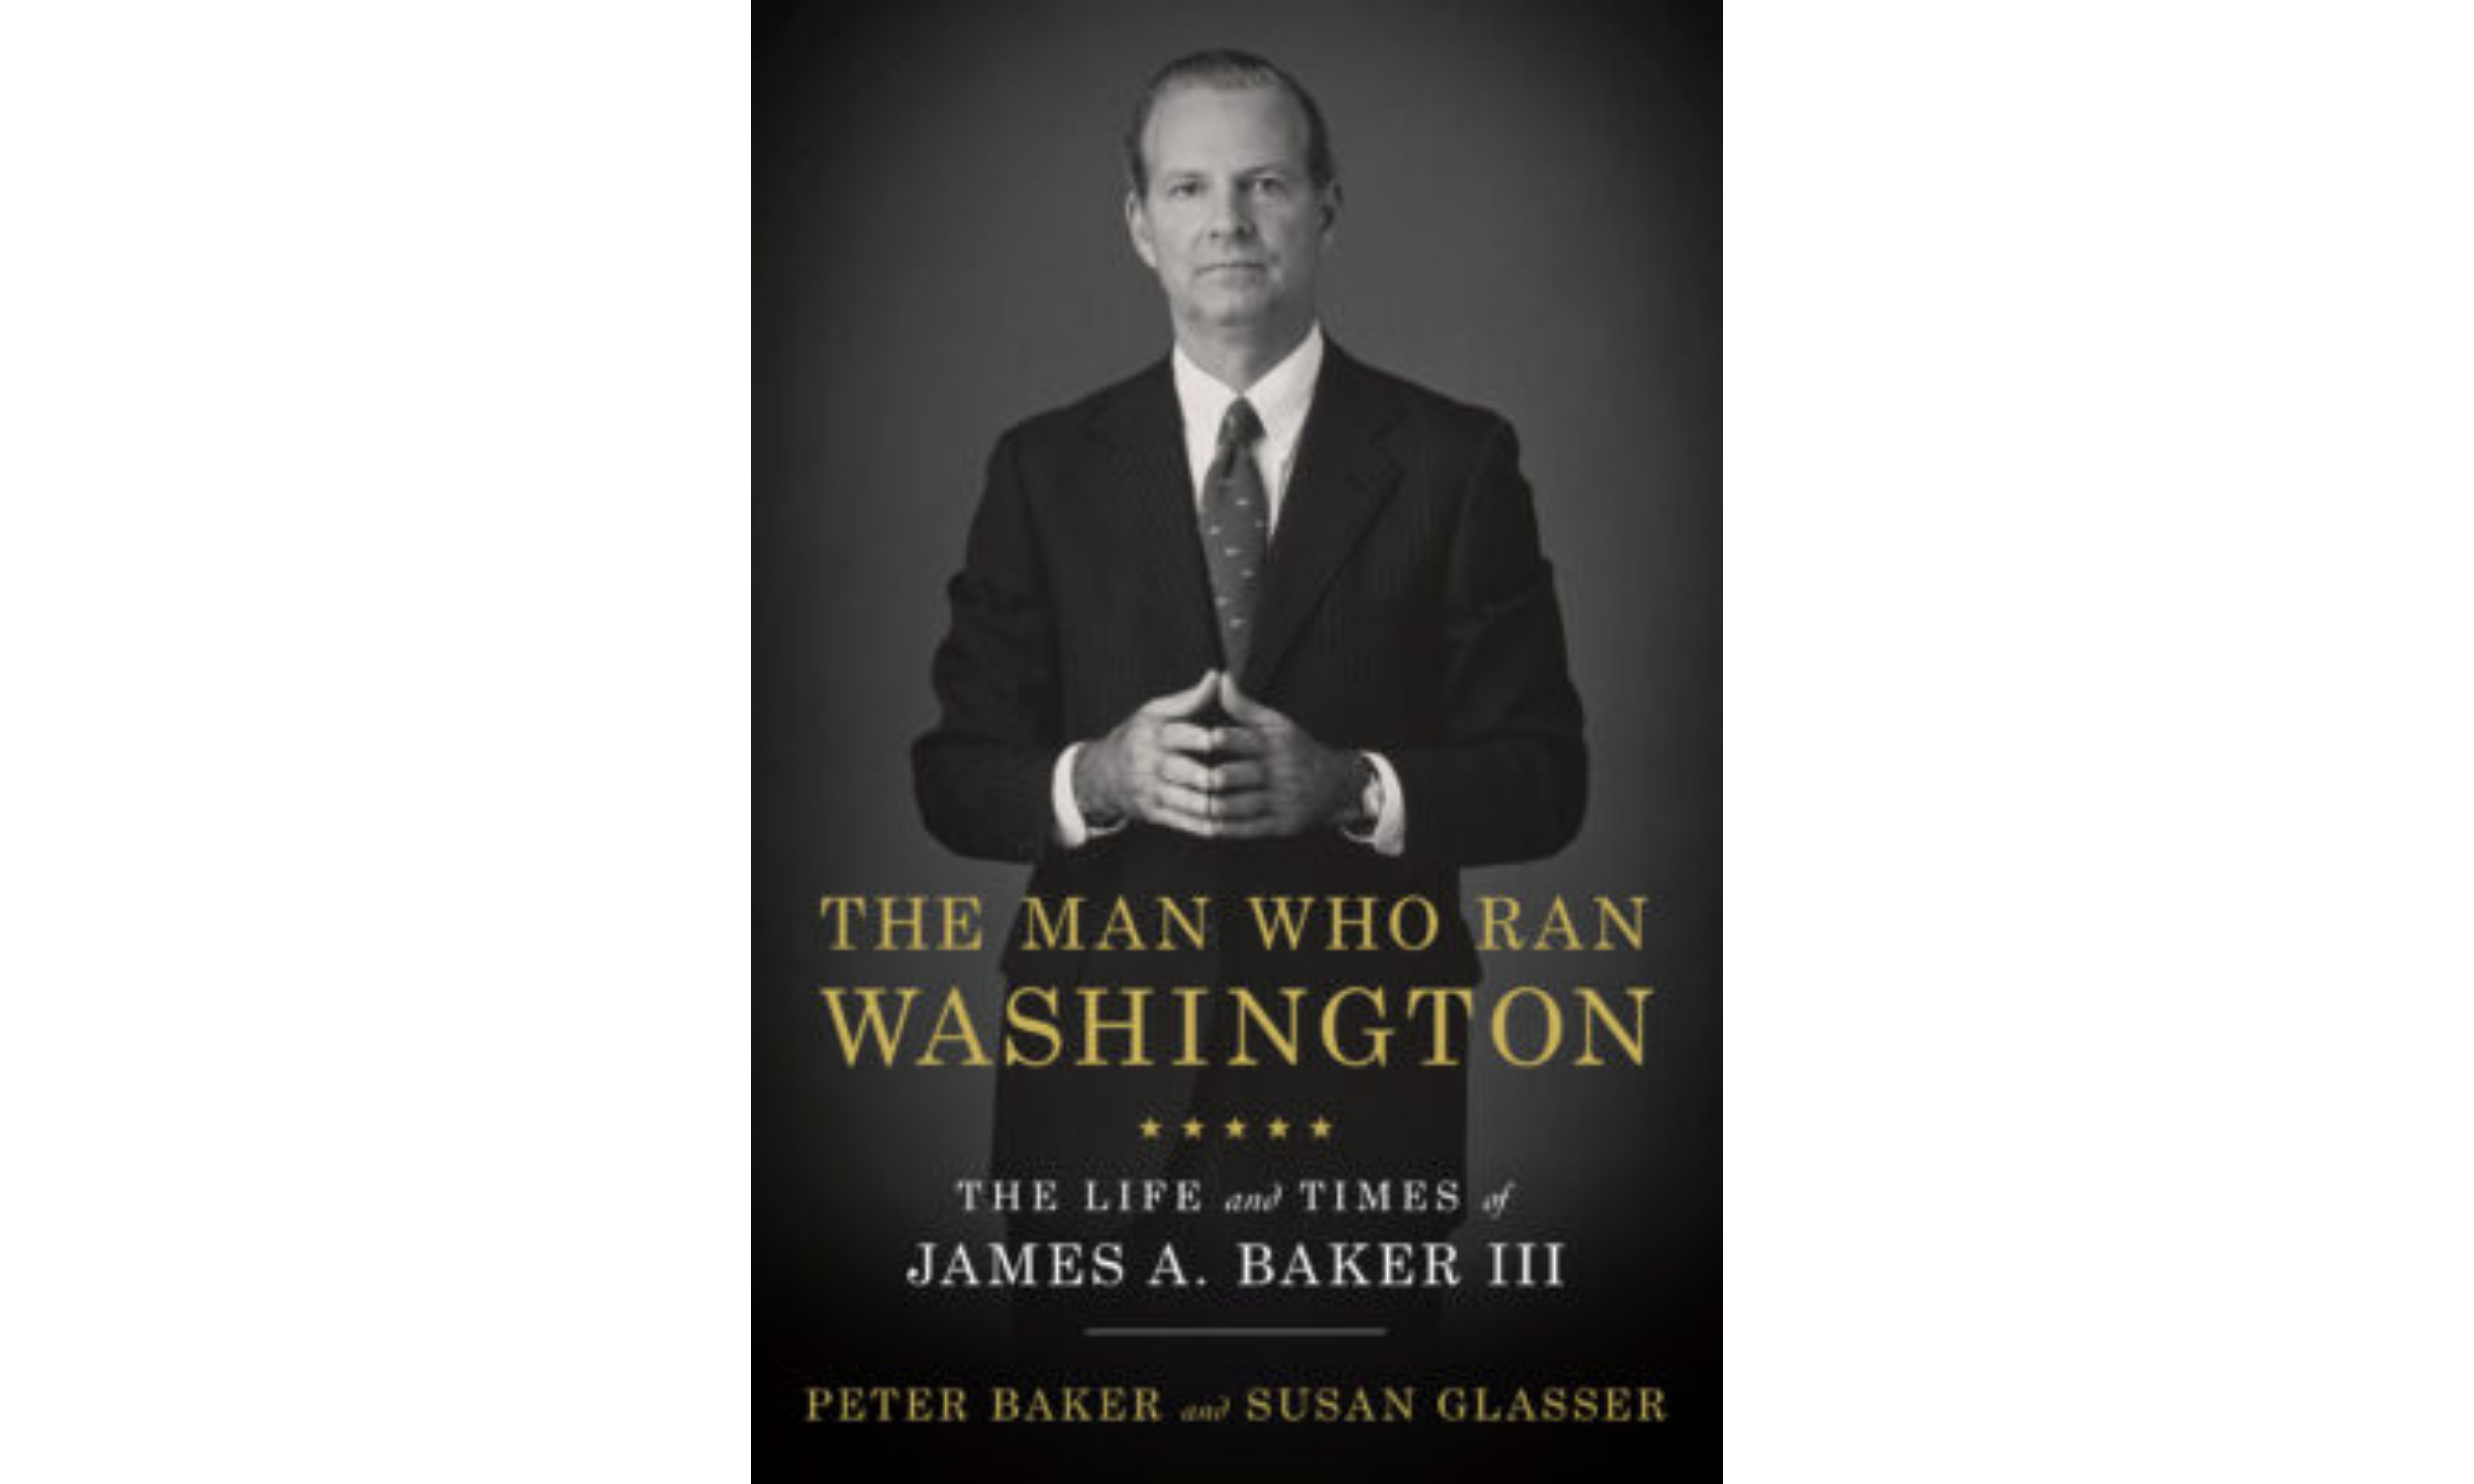 THE MAN WHO RAN WASHINGTON: The Life and Times of James A. Baker III by Peter Baker and Susan Glasser